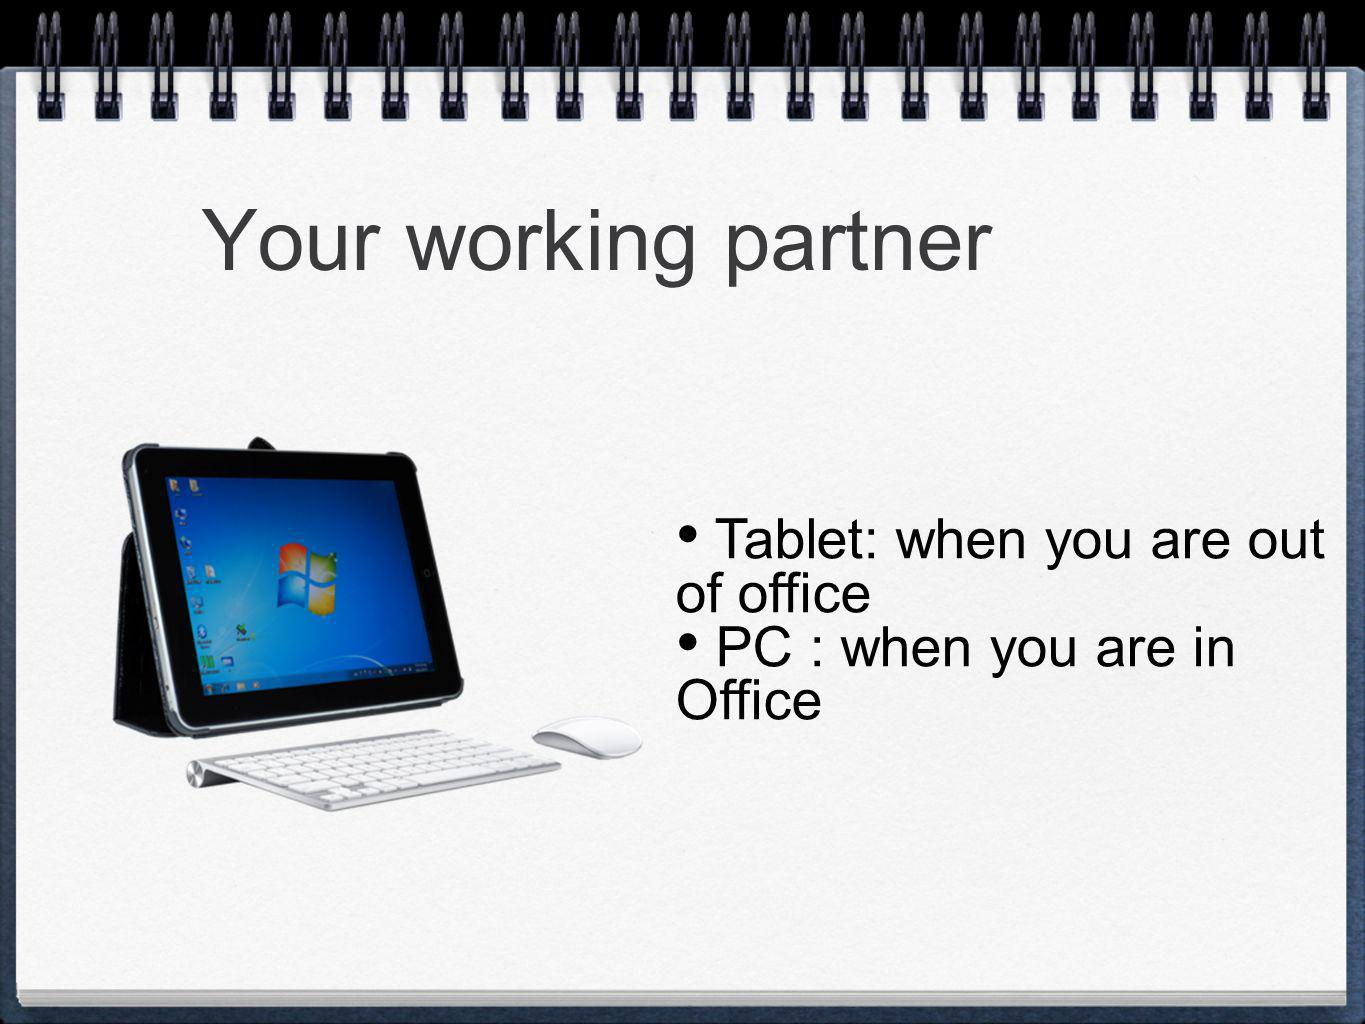 Your working partner Tablet: when you are out of office PC : when you are in Office